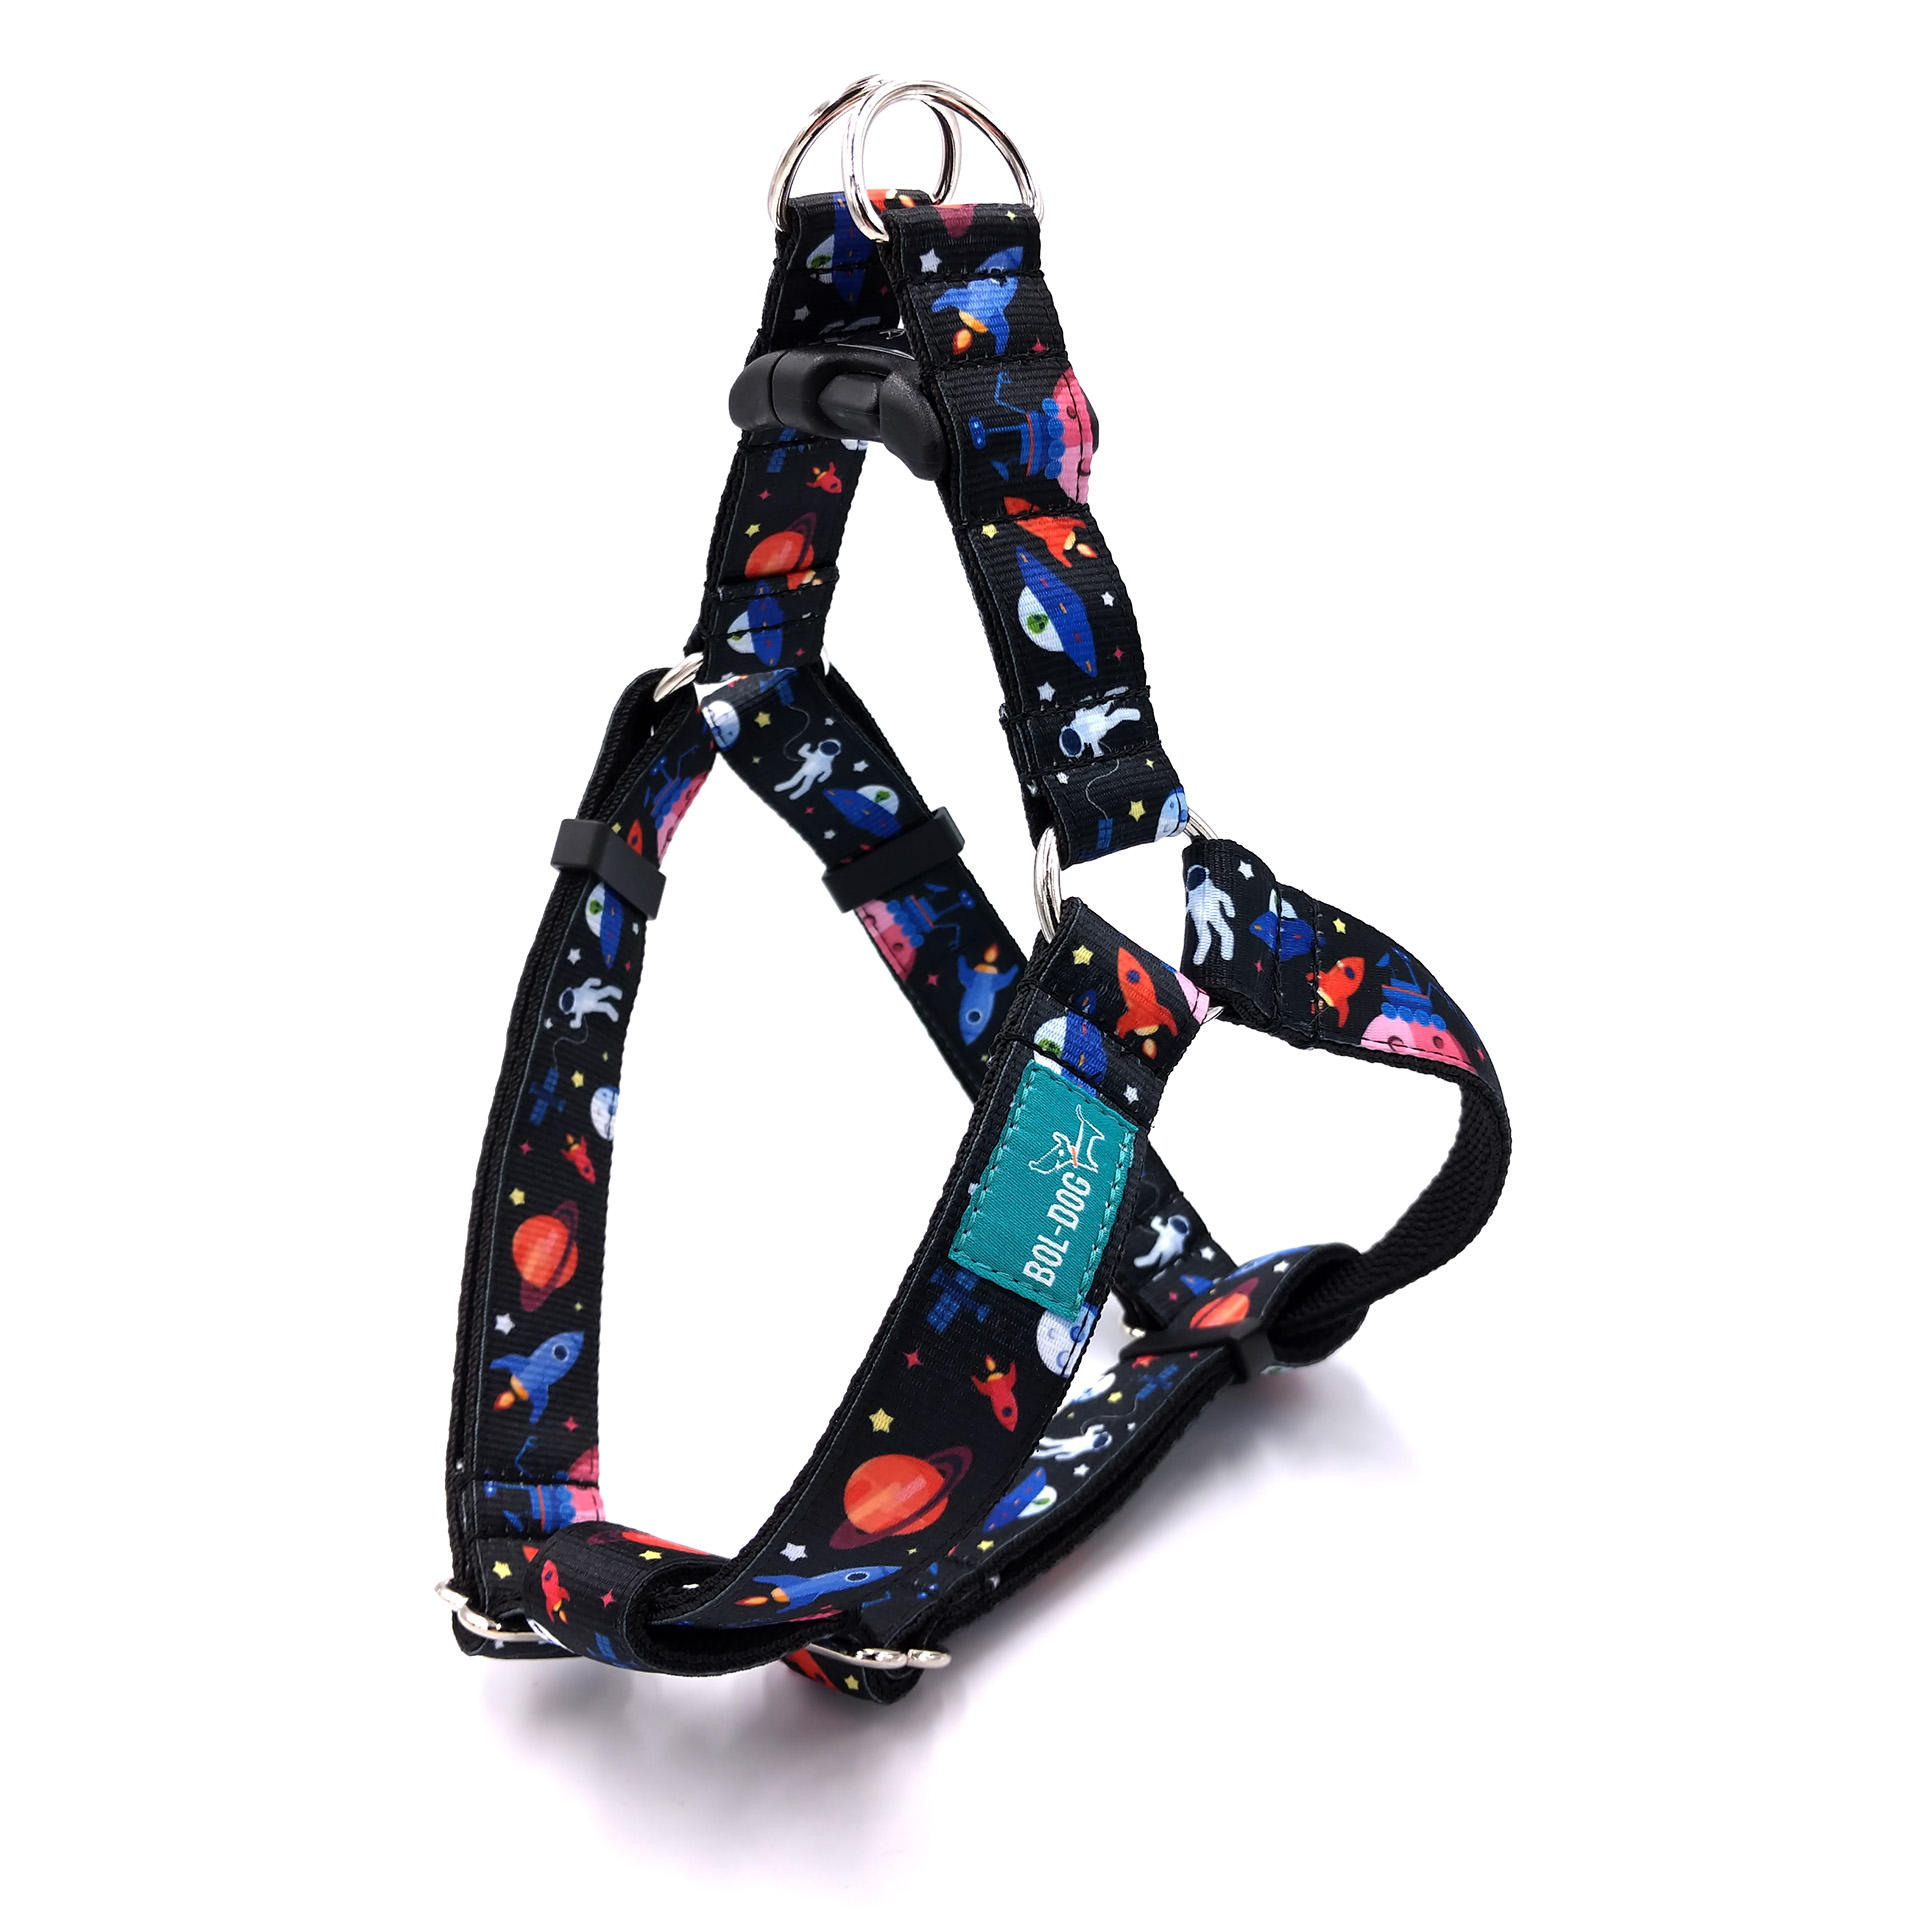 Astronaut dog harness